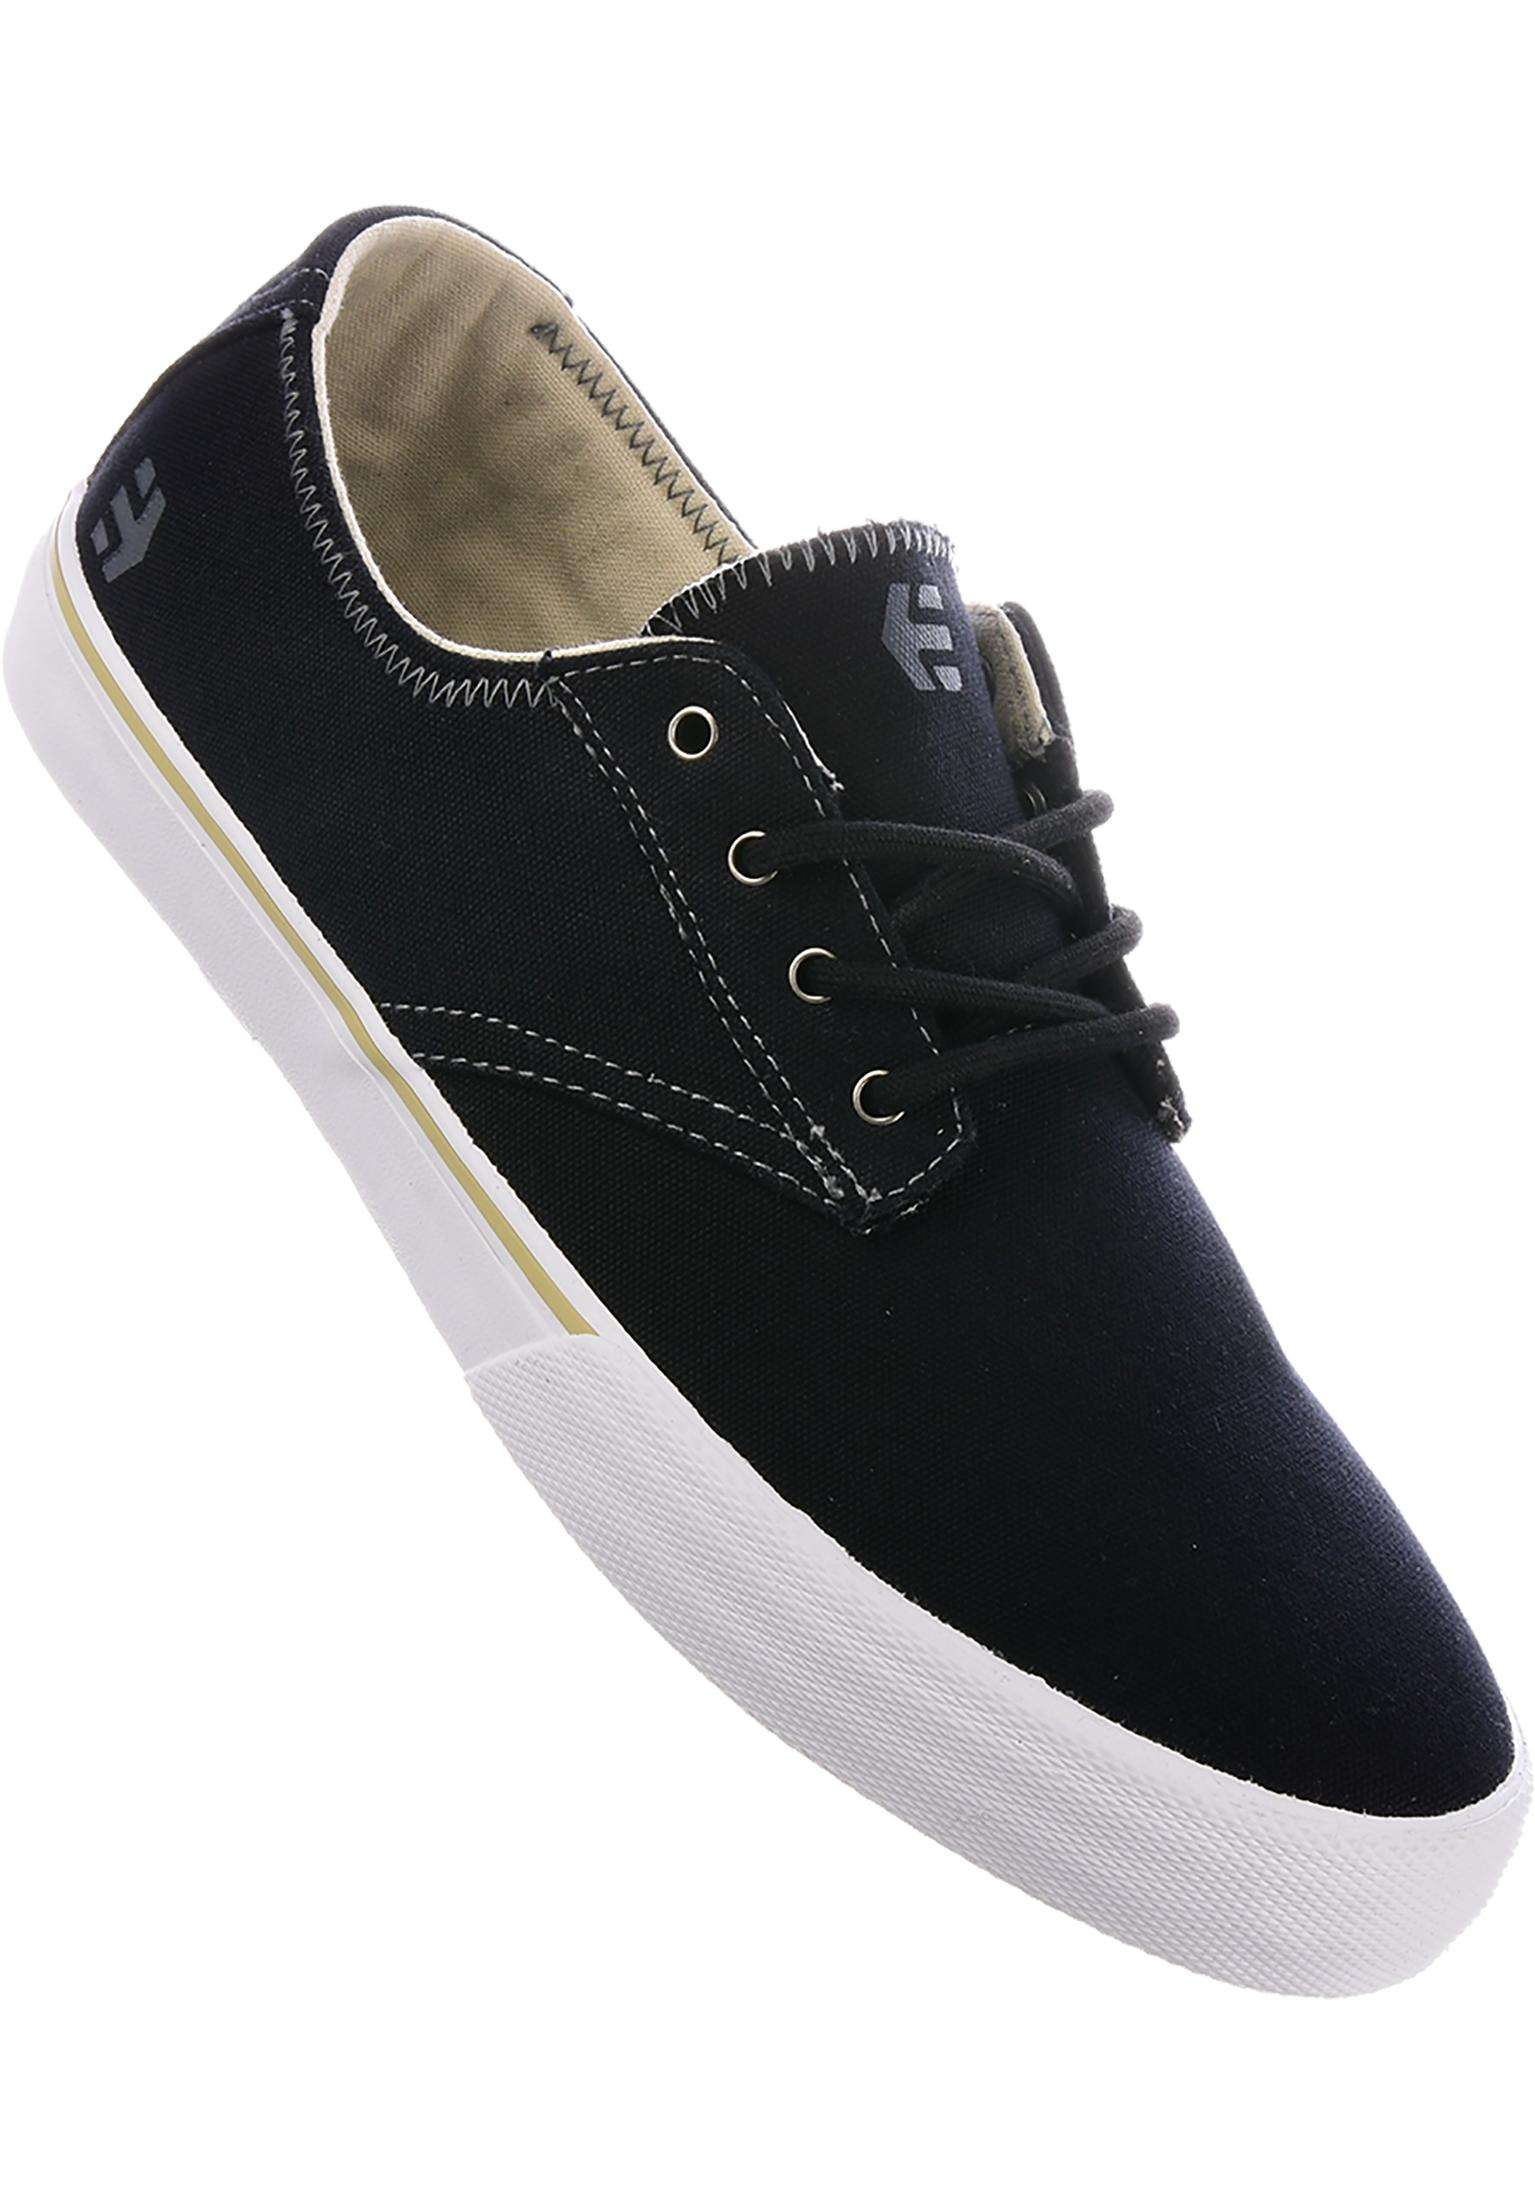 the latest af75c b68f6 Jameson Vulc LS etnies All Shoes in black-white-grey for Men   Titus